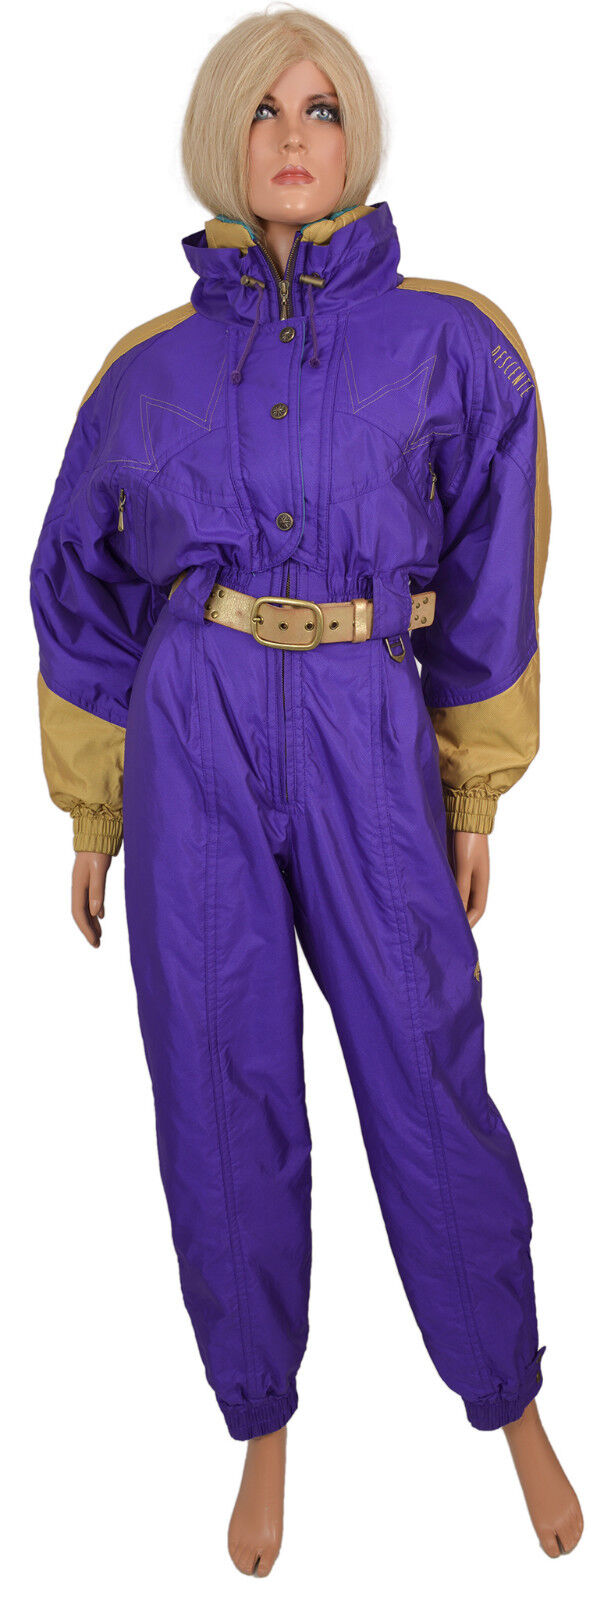 Vintage DESCENTE SKI SUIT 1 One Piece Romper Luxury Purple gold Ladies sz 4